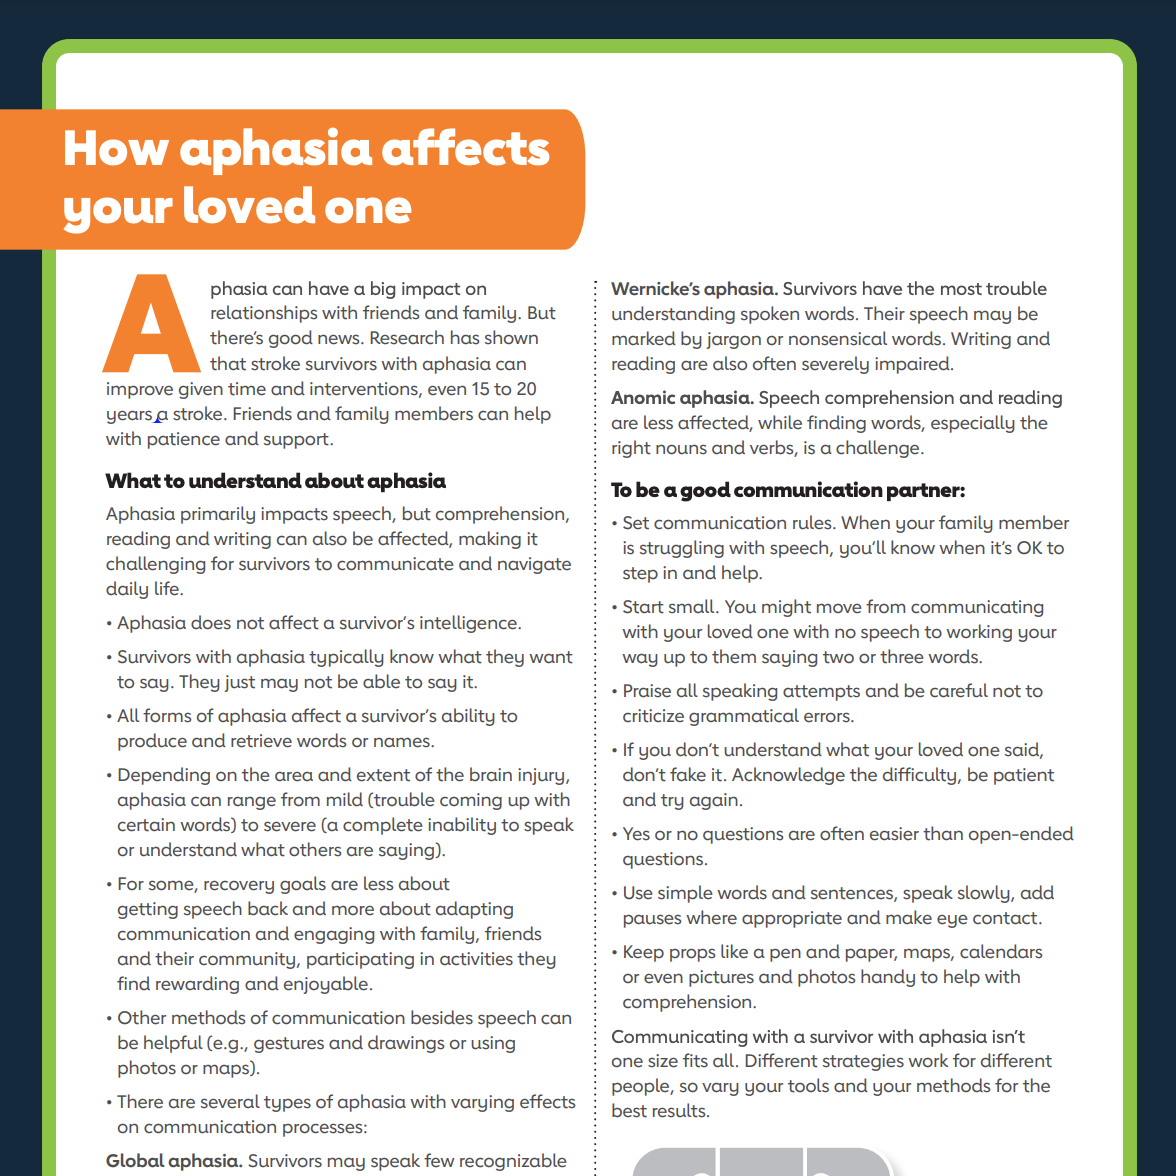 How aphasia affects your loved ones